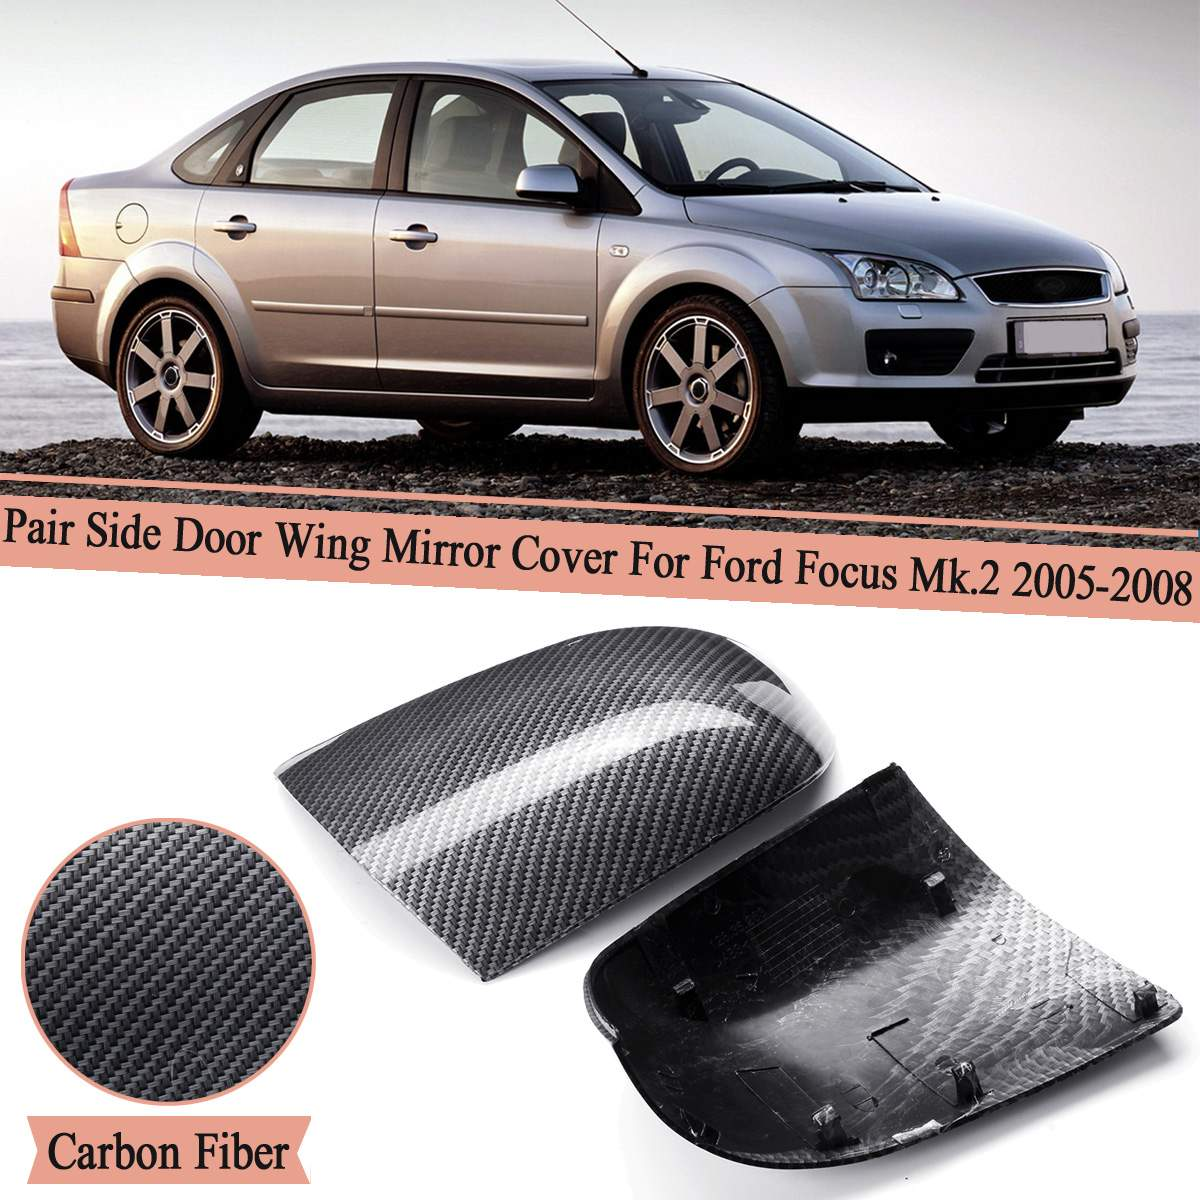 Left Right <font><b>Side</b></font> Car Rear View <font><b>Mirror</b></font> Wing Cover Case Trim Carbon Fiber For <font><b>Ford</b></font> for <font><b>Focus</b></font> Mk.2 2005-2008/for <font><b>Ford</b></font> <font><b>Focus</b></font> 2004-17 image